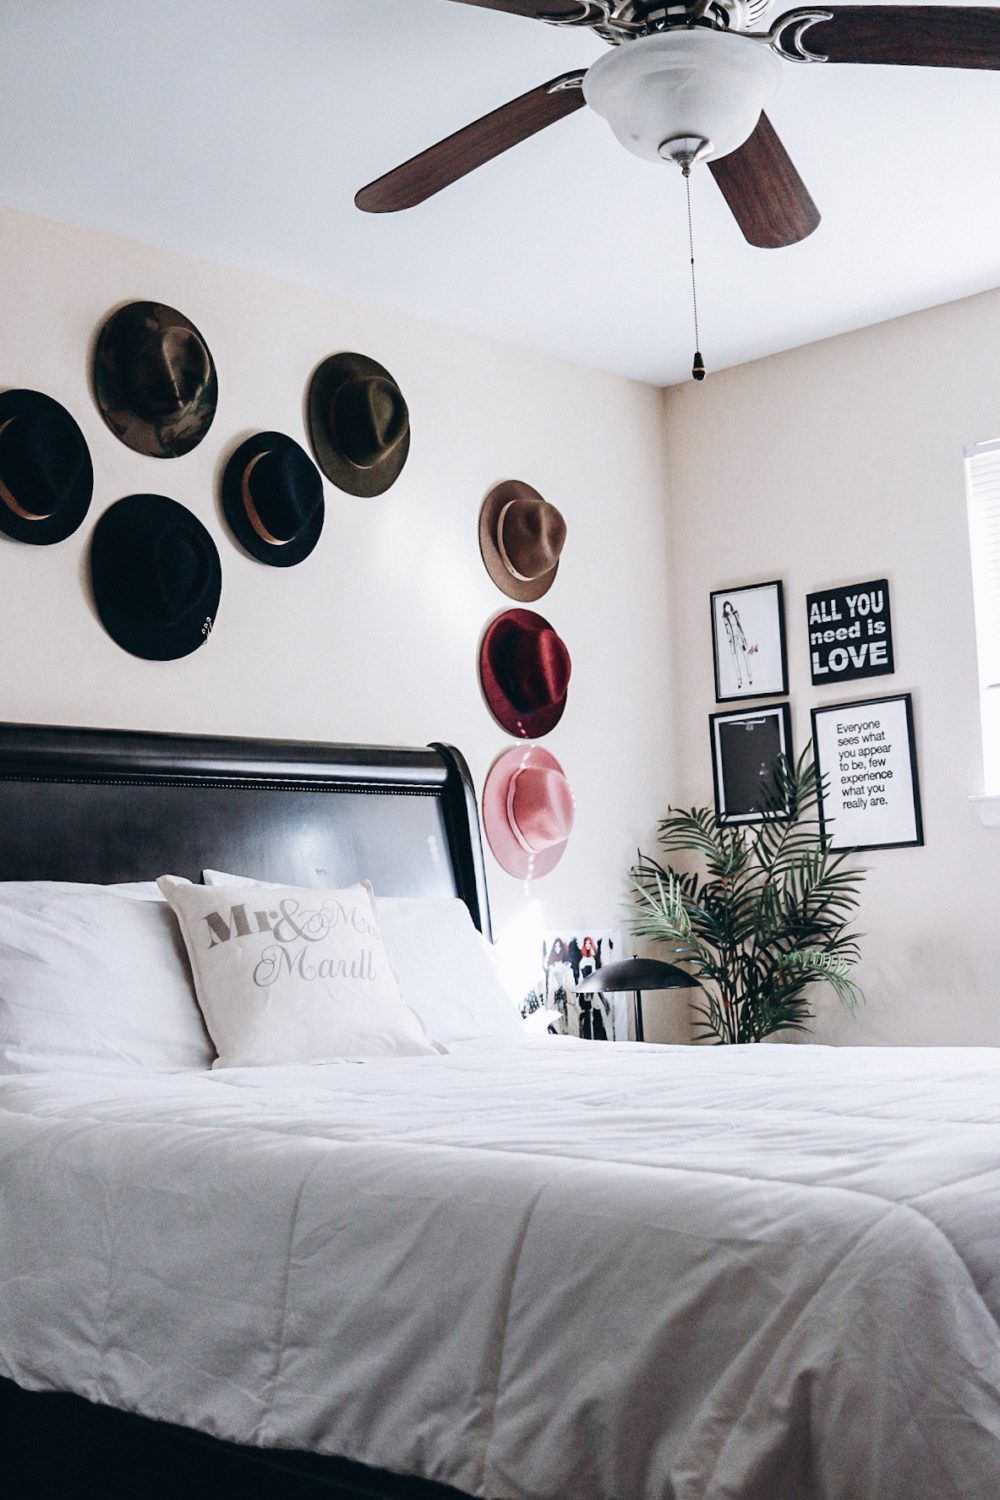 washington dc top blogger's bedroom with decor using wide brim hats as wall decor